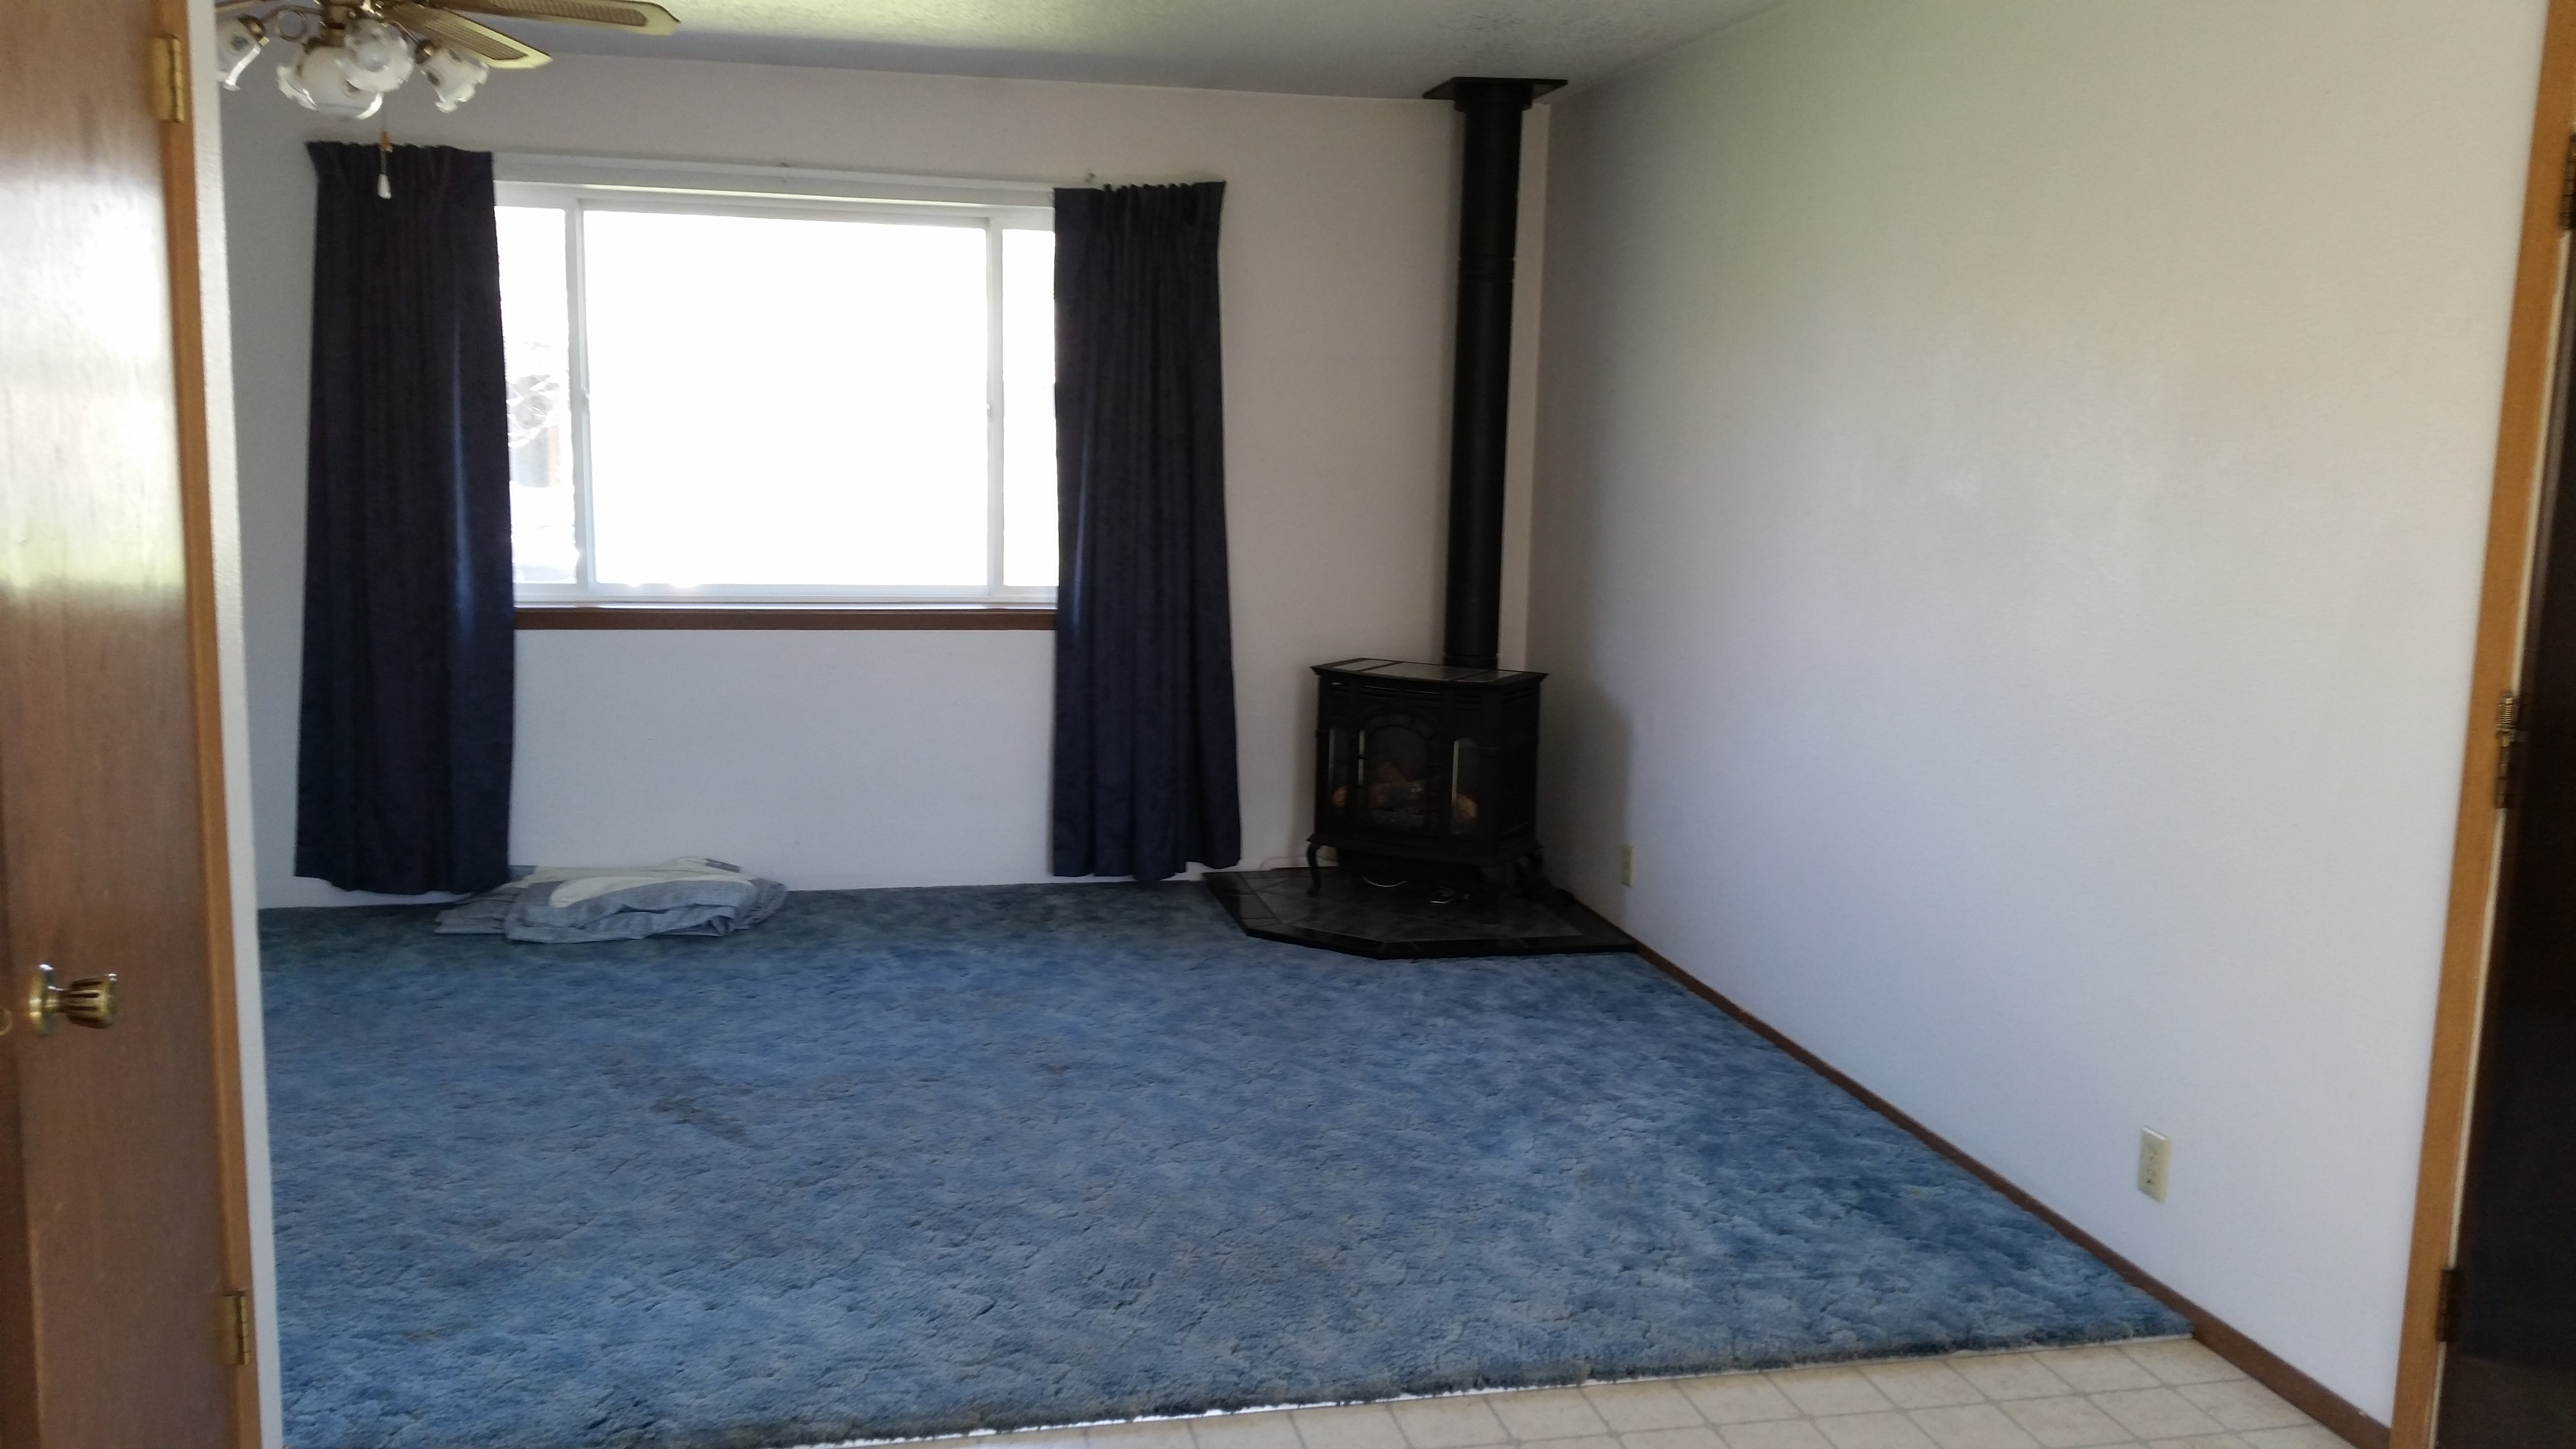 House Remodel - Before